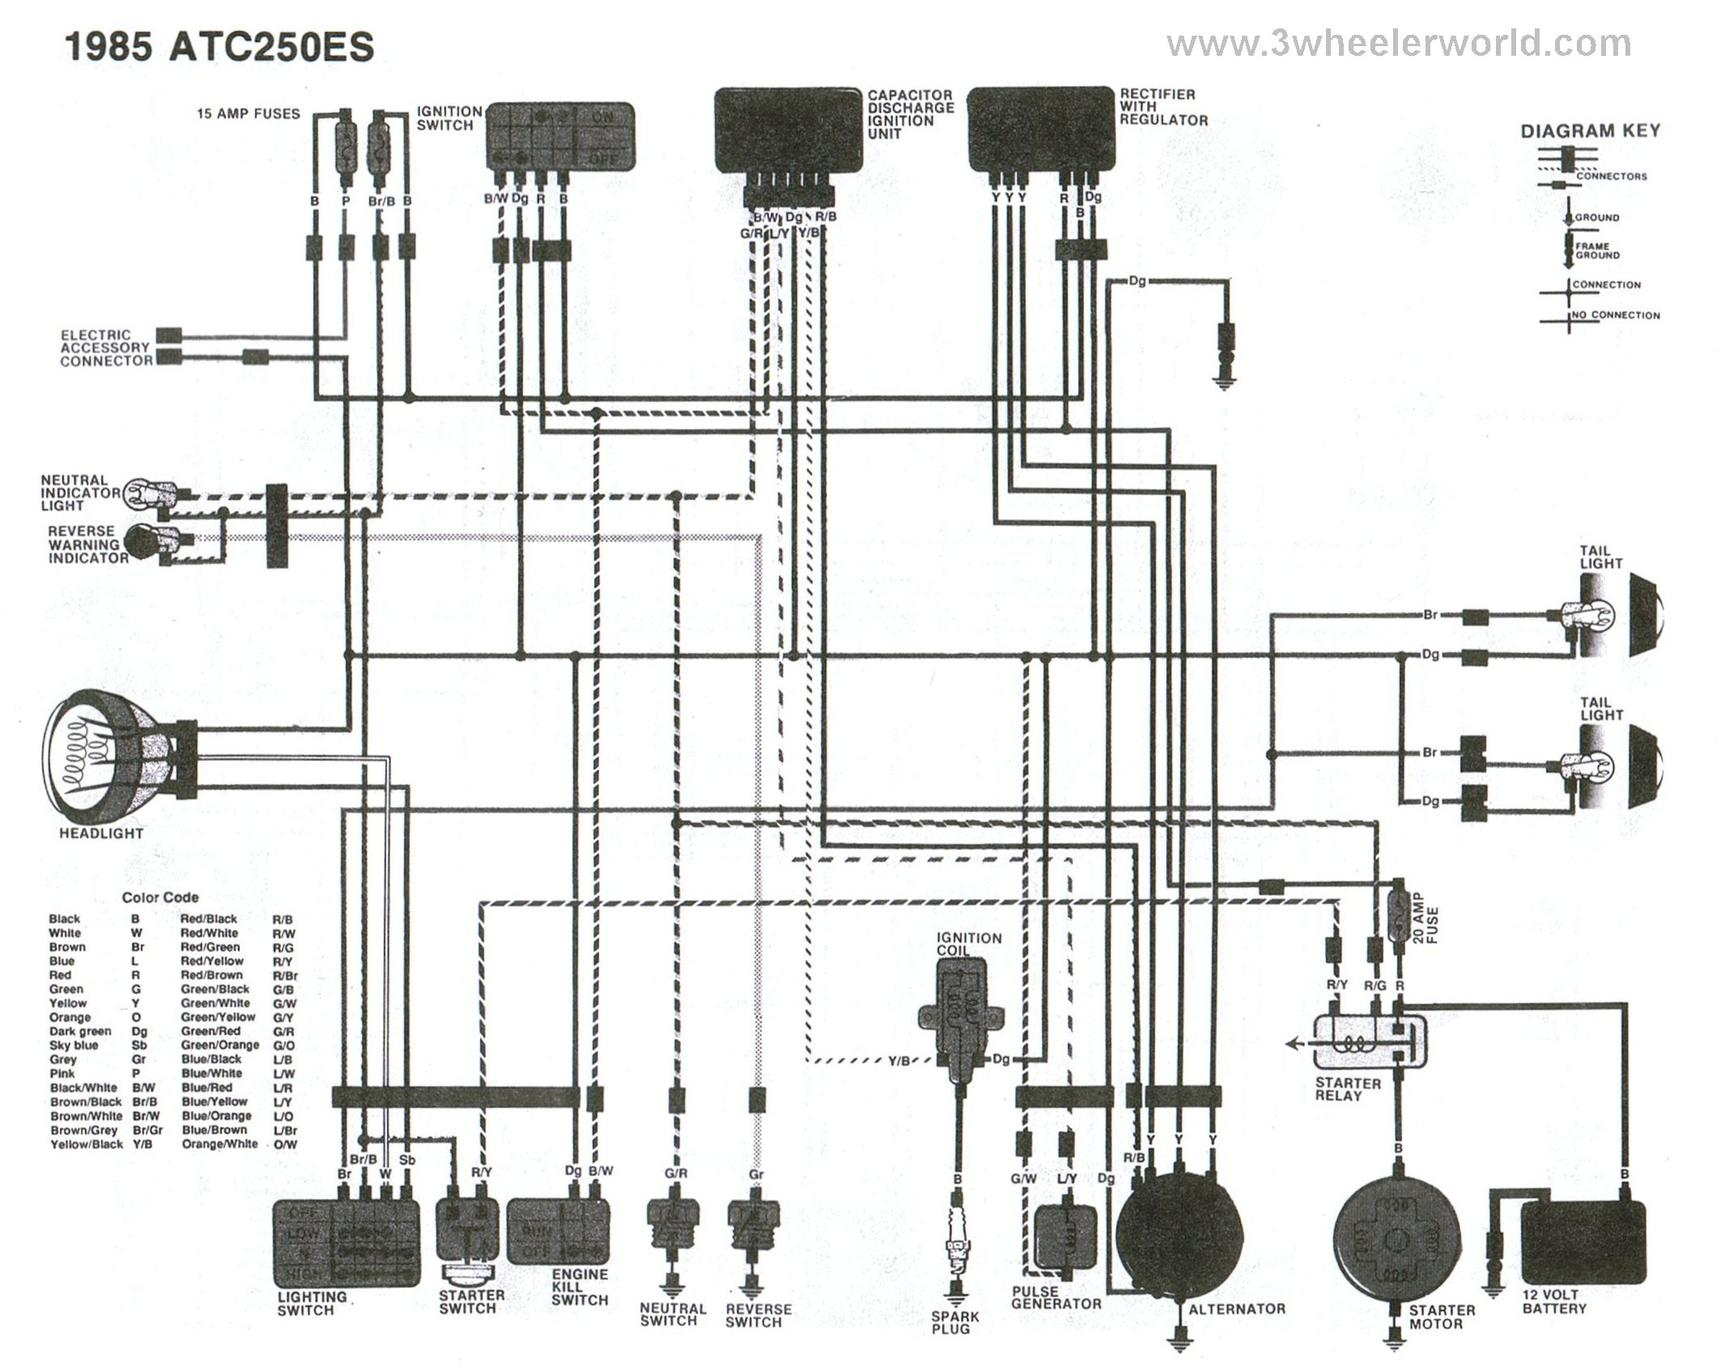 article preview 3wheeler world - honda atc wiring diagrams article preview   article preview